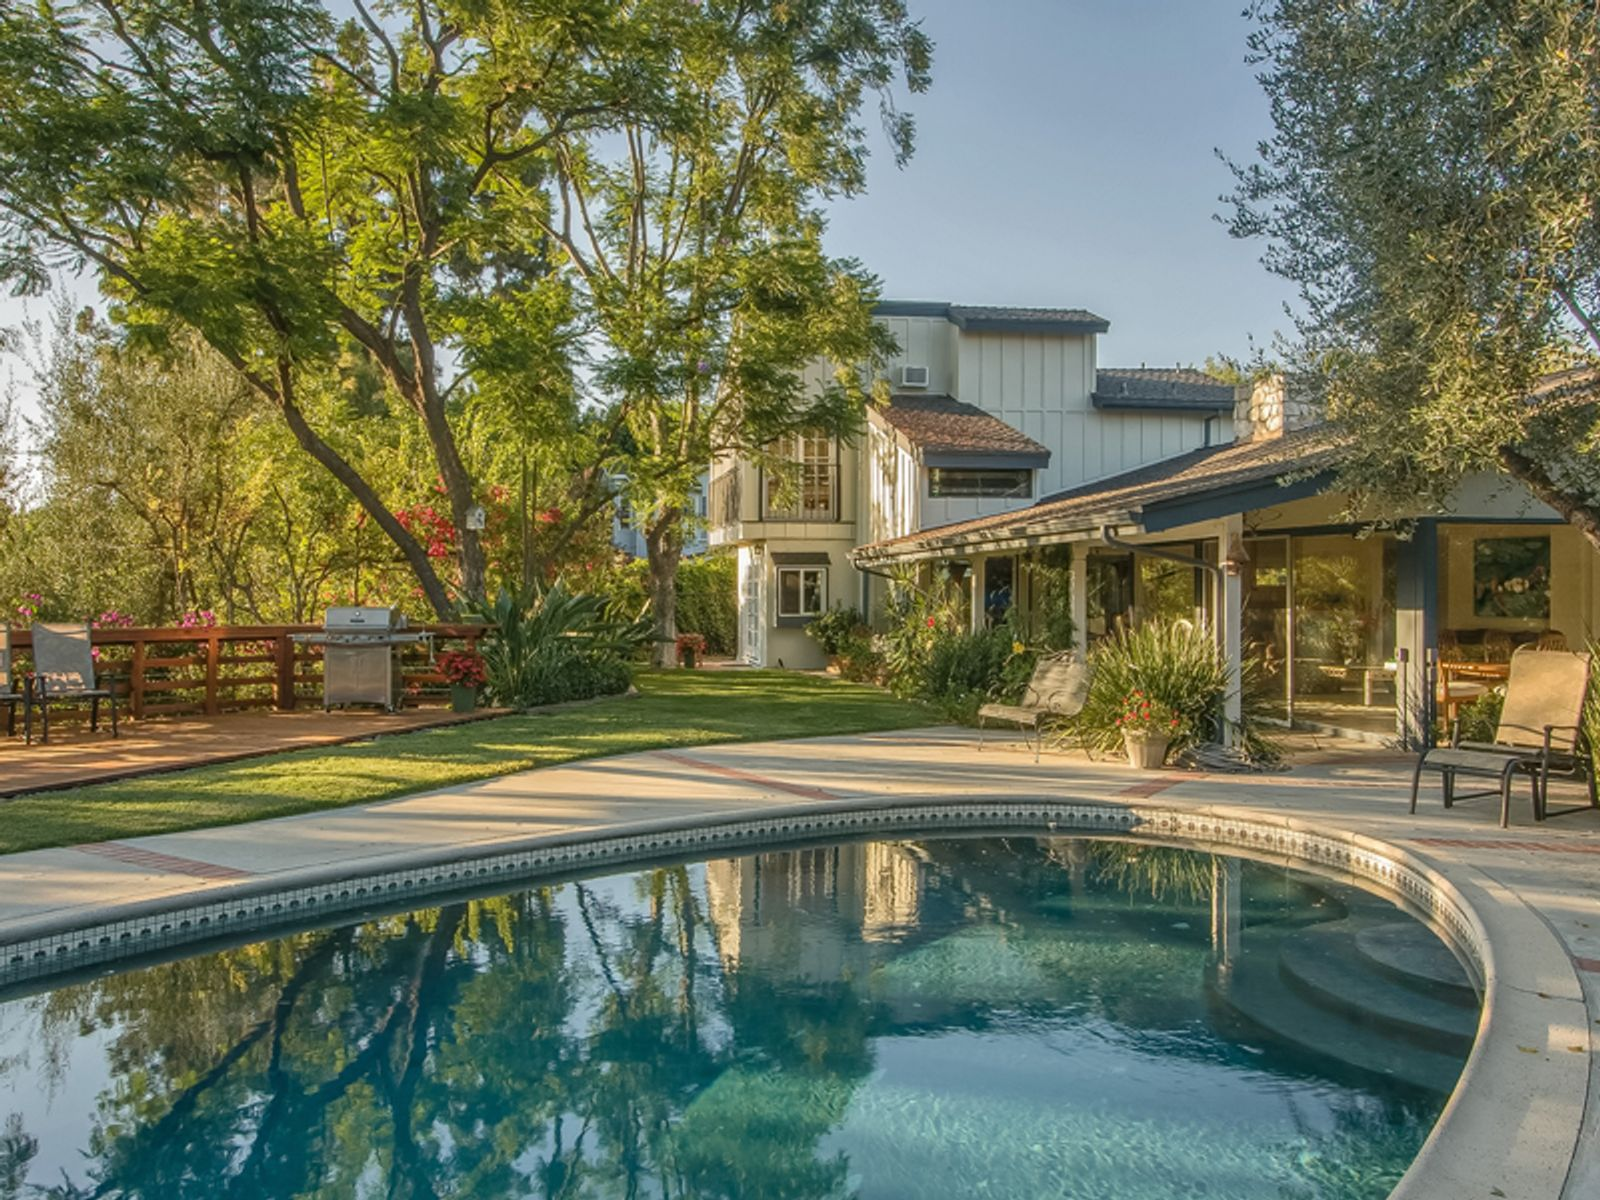 Serene Bel Air Home with Views, Los Angeles CA Single Family Home - Los Angeles Real Estate